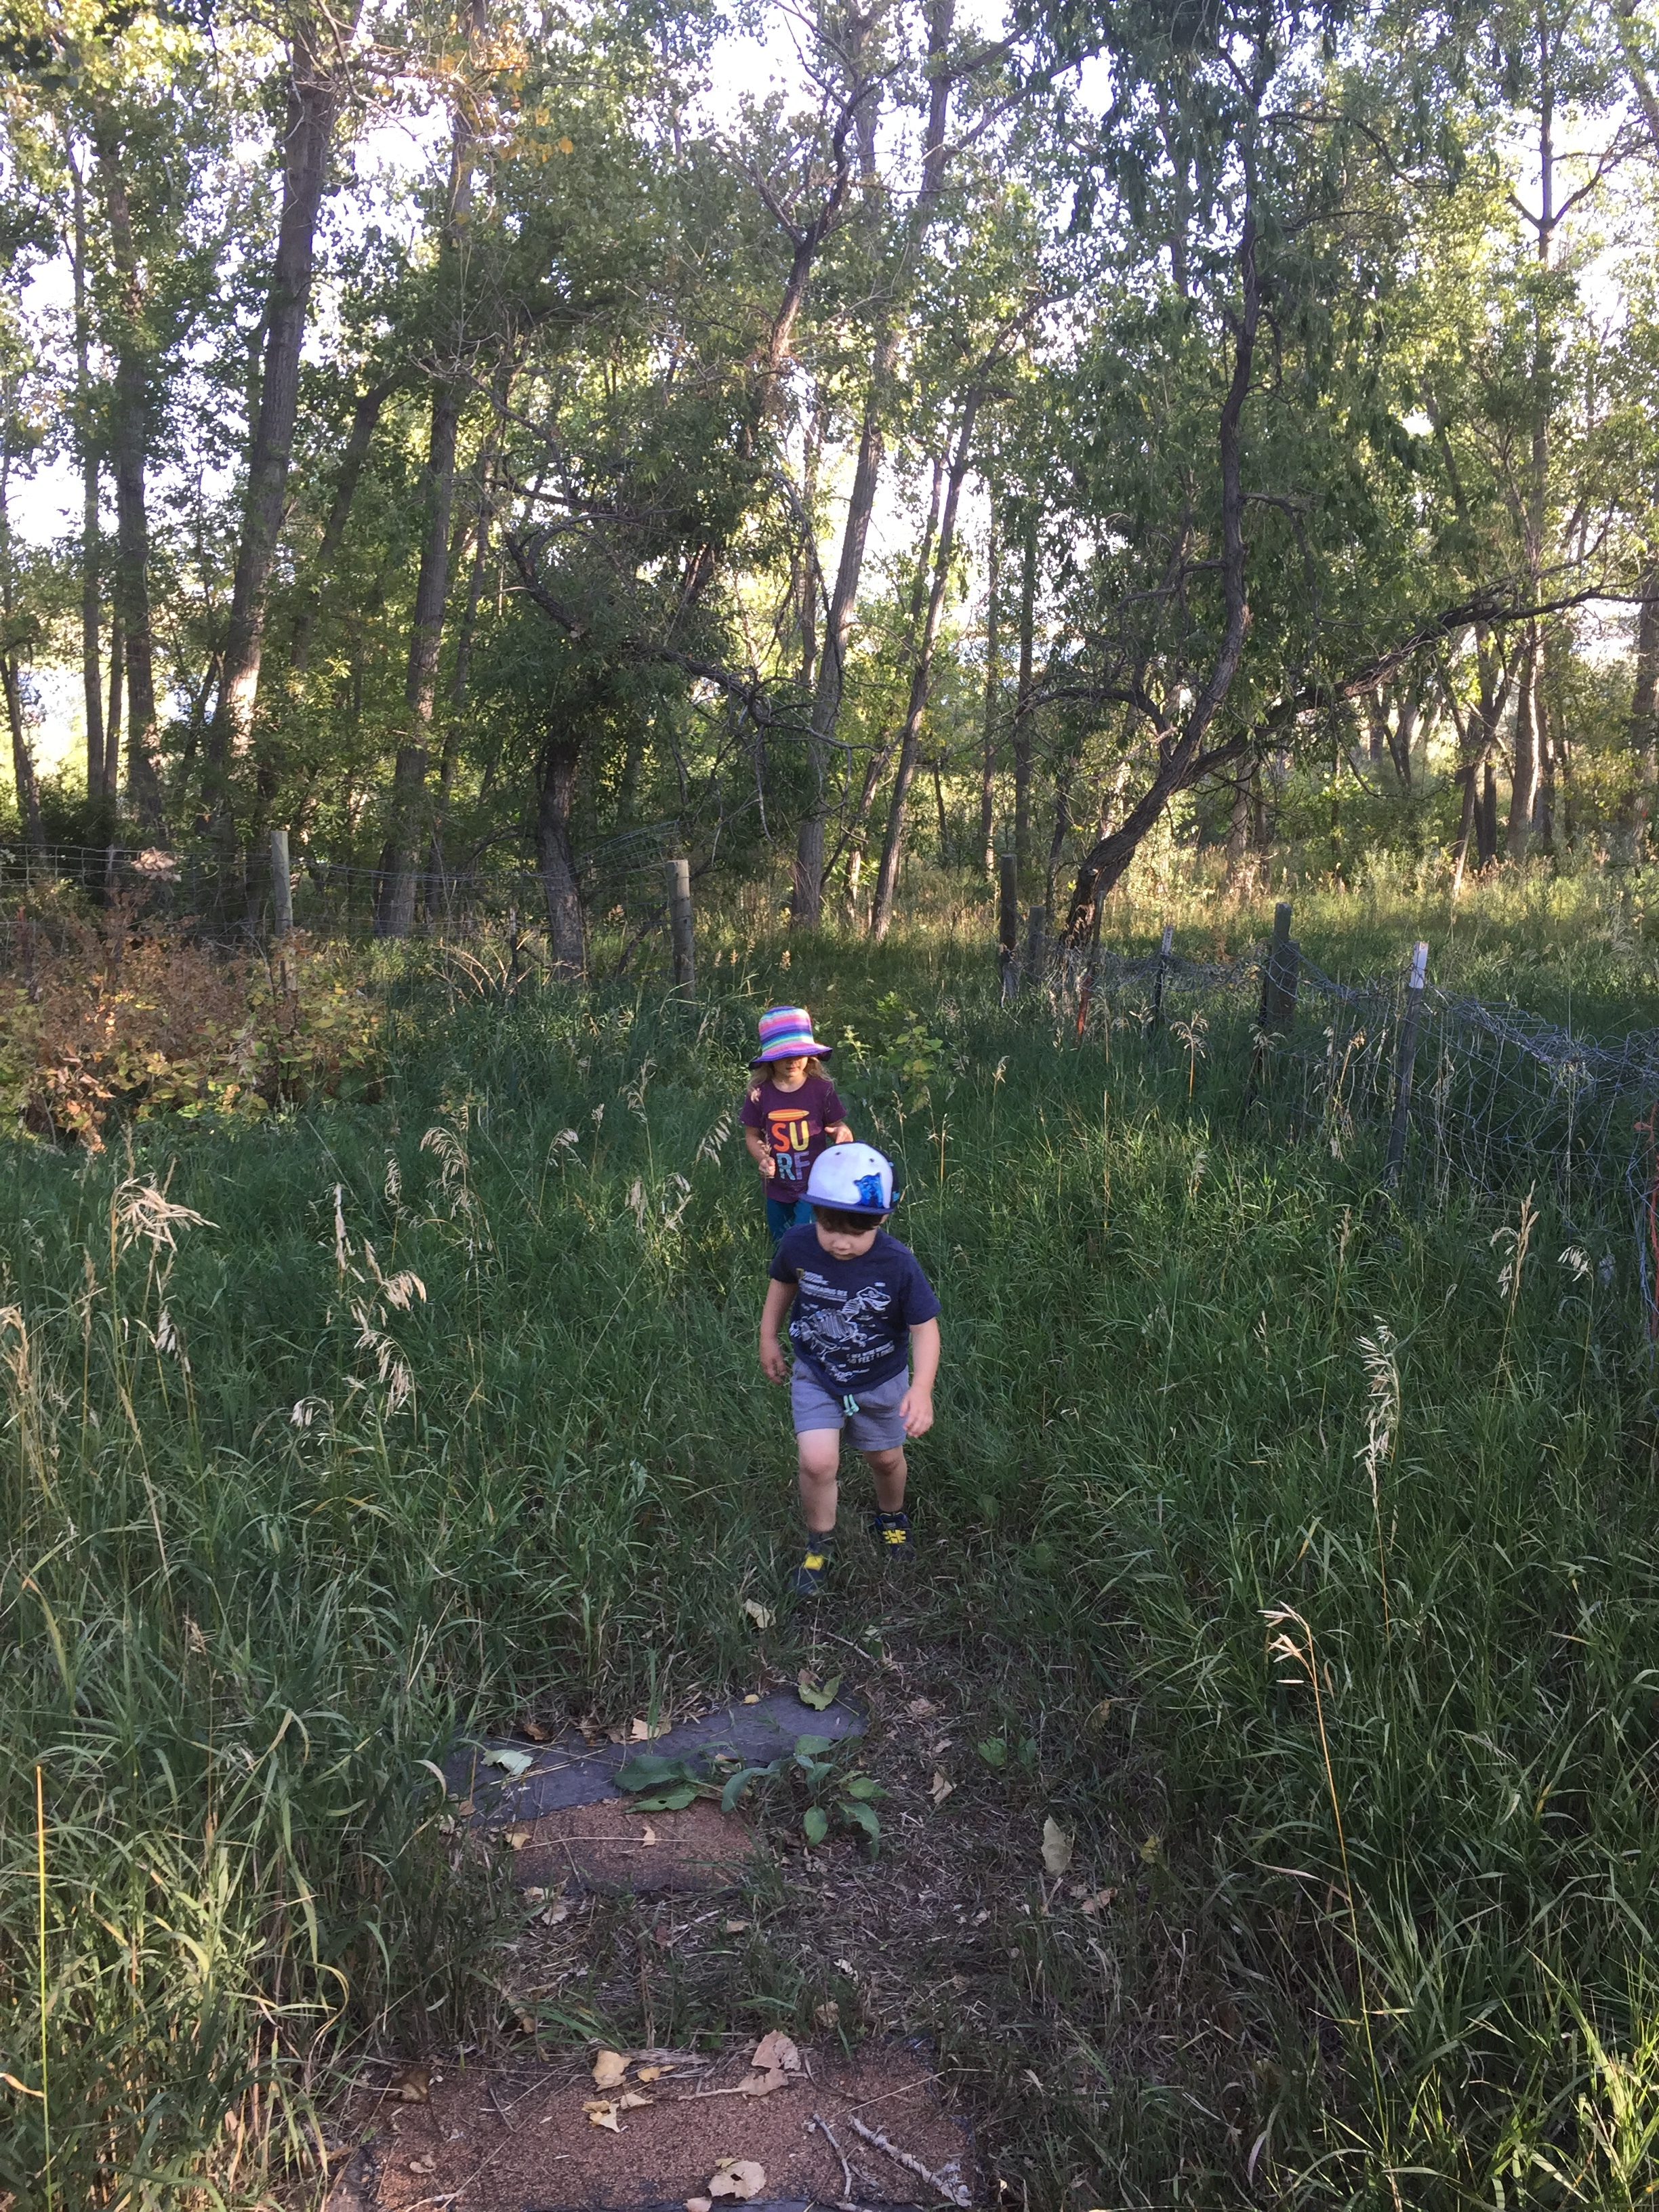 """Exploring the land means finding interesting things like the """"prickle ball"""" seeds that look and feel just like Velcro. We saw plenty of these near the """"cow shed."""""""